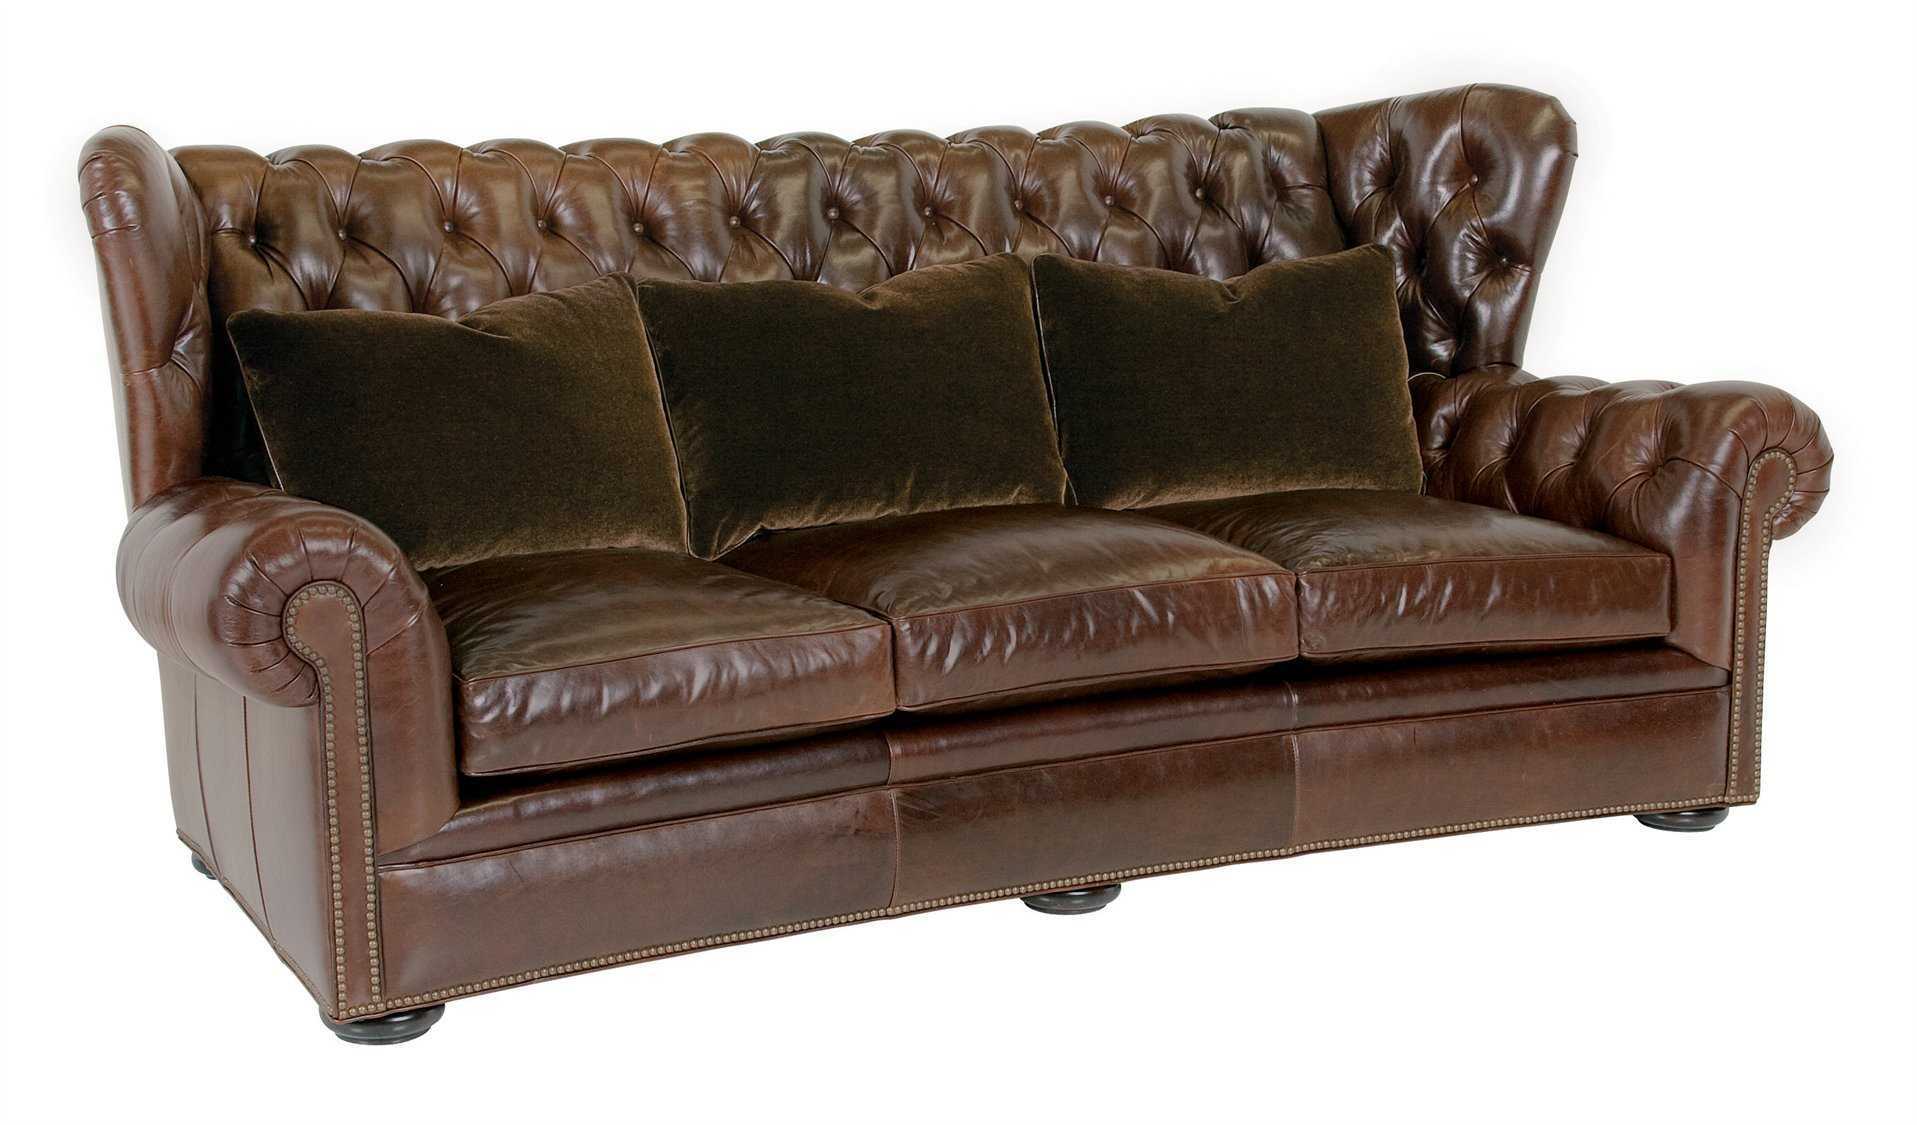 classic leather pomeroy tufted sofa cl8613. Black Bedroom Furniture Sets. Home Design Ideas